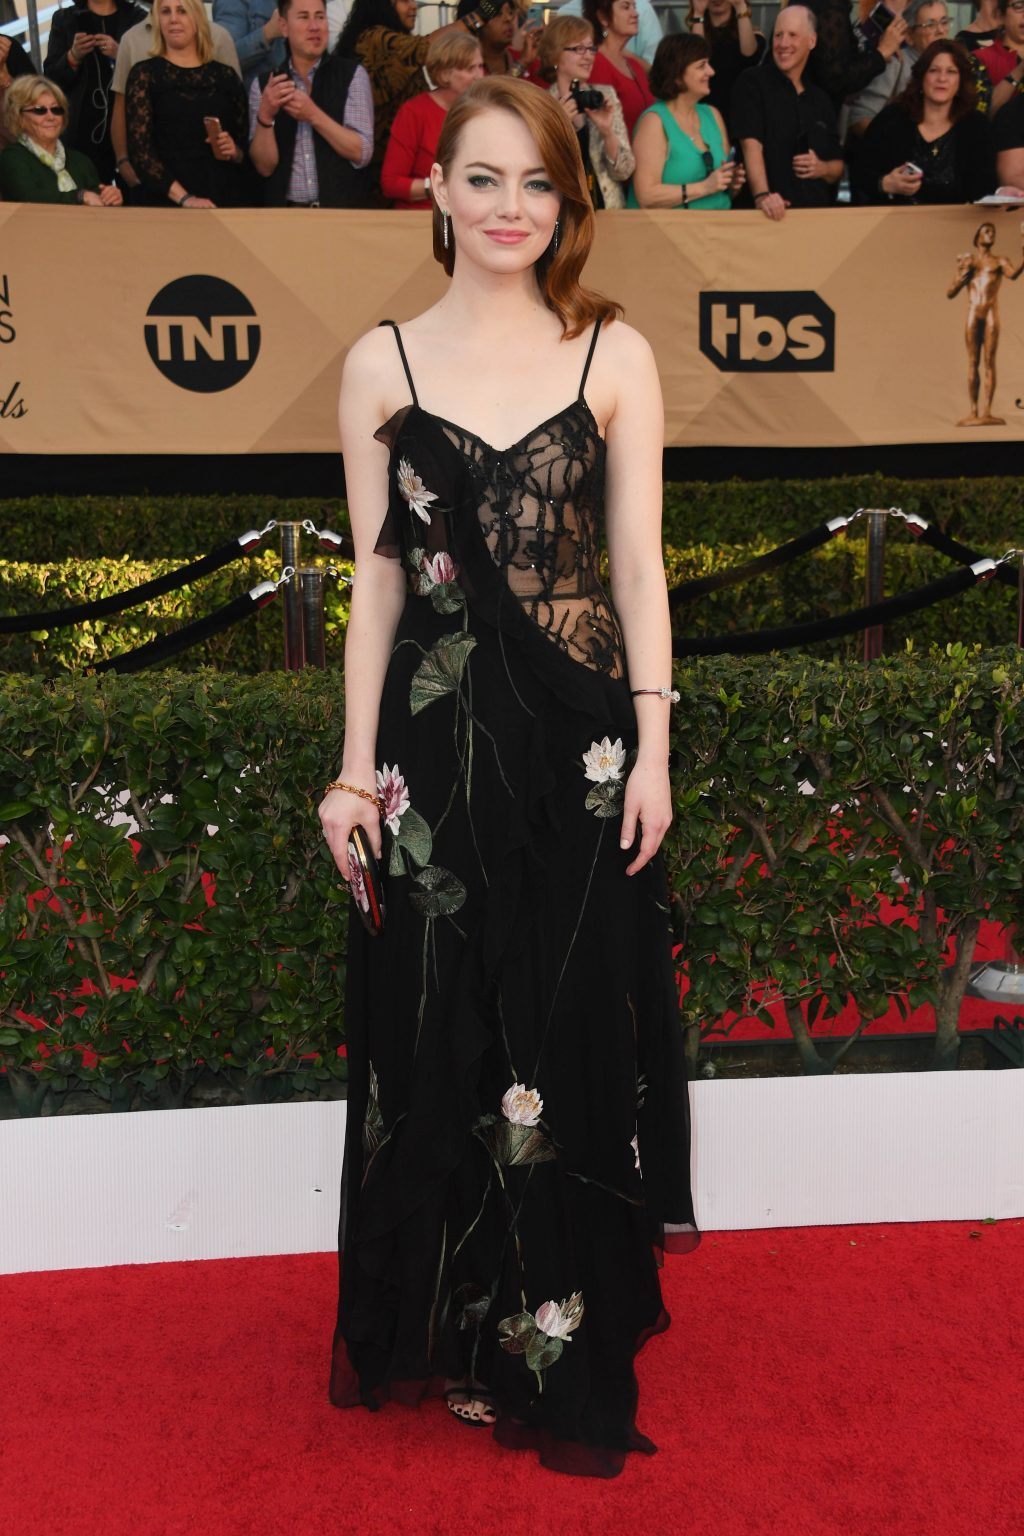 The Best-Dressed Celebrities at the 2017 SAG Awards